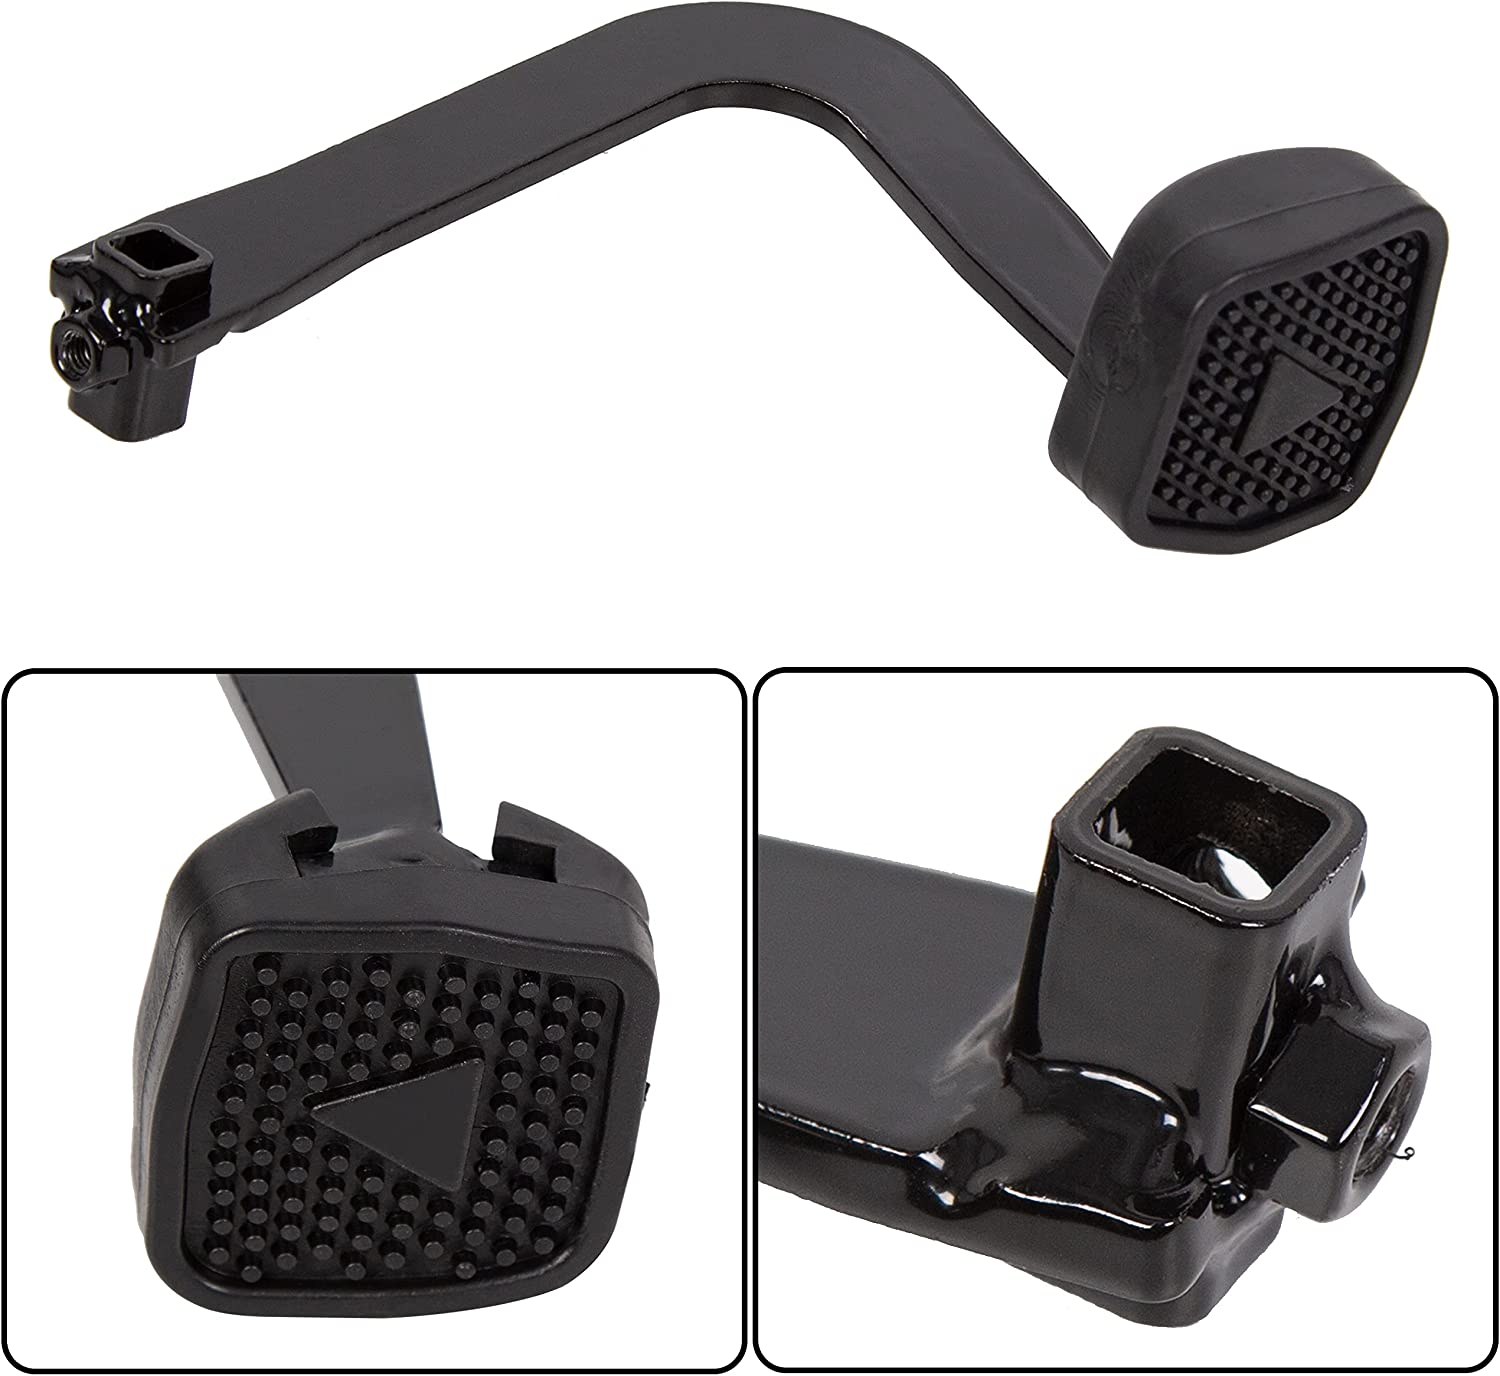 JMTAAT for John Deere 425/445/455 Reverse X-Pedal with Rubber Pad